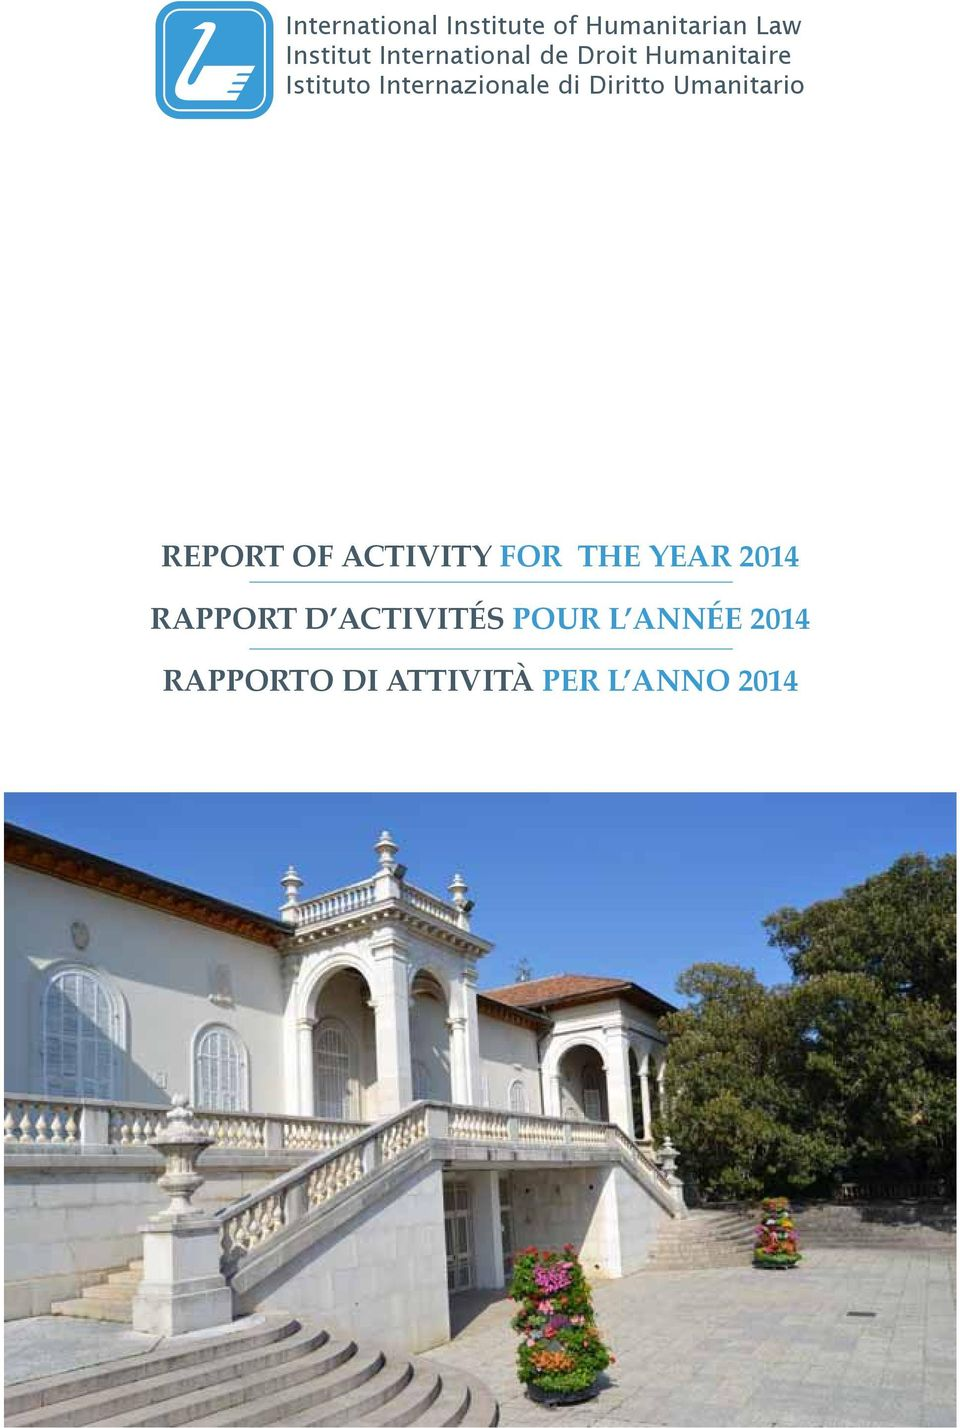 Diritto Umanitario REPORT OF ACTIVITY FOR THE YEAR 2014